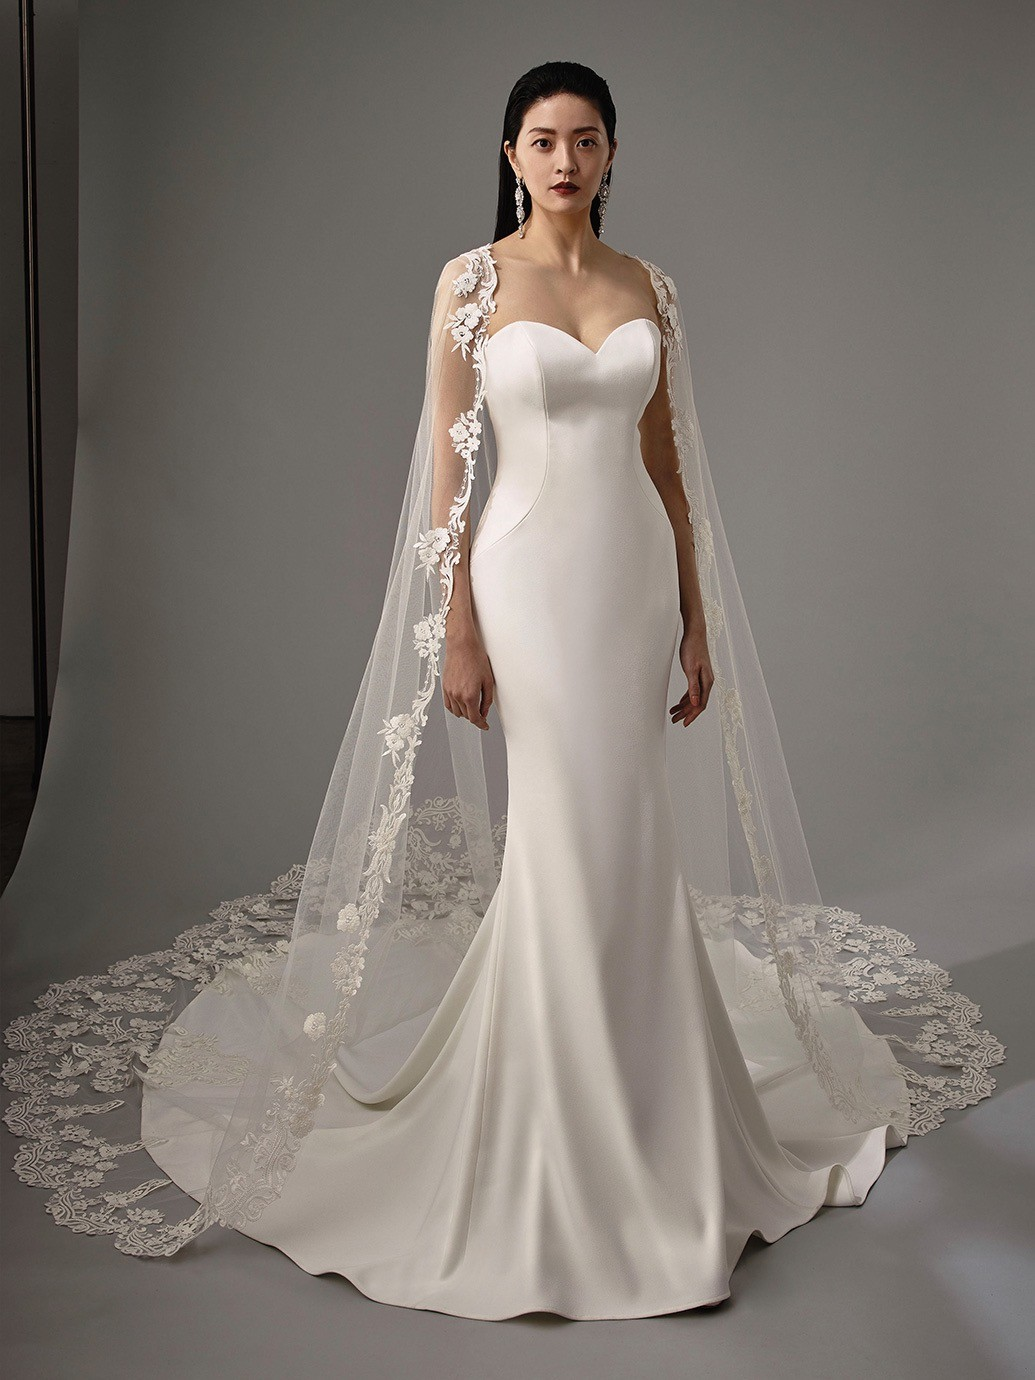 Brautkleid Modell Monika aus der Blue by Enzoani Kollektion 2020